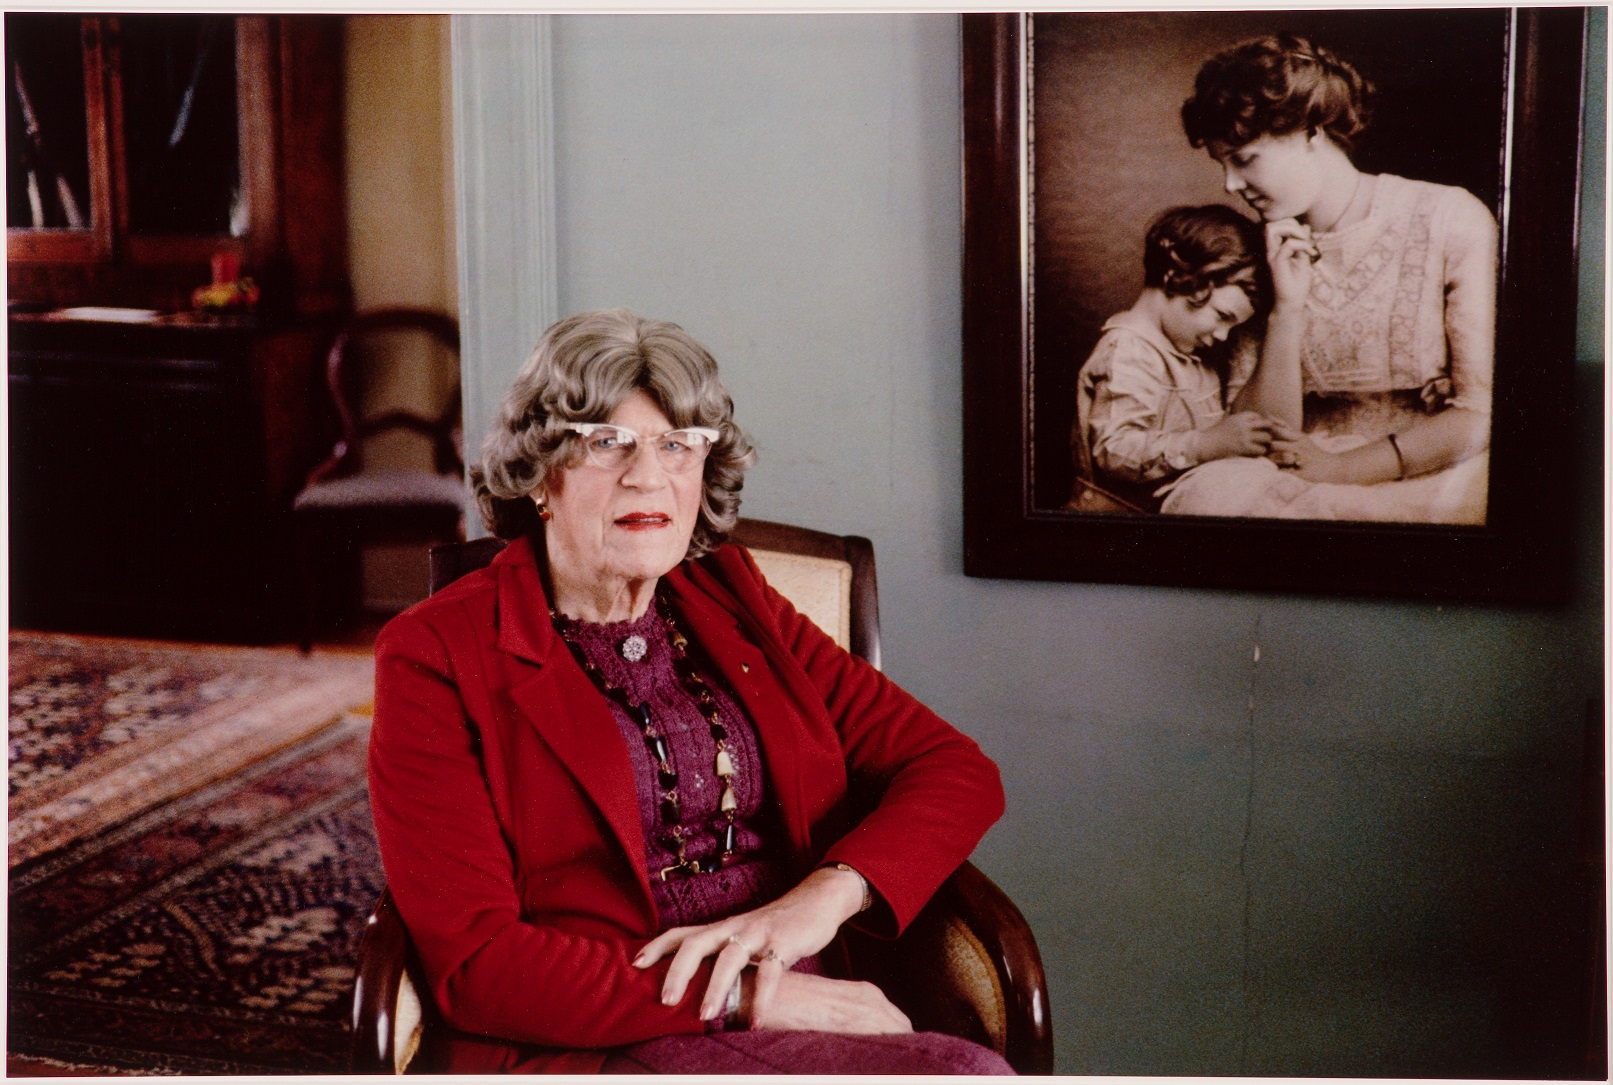 An elderly trans woman is shown in a home furnished with antiques and patterned rugs. She is looking straight at the camera. Dressed in a red jacket and blouse, and adorned with a long necklace, she sits in an upholstered chair in front of a large framed black and white photograph. The photograph shows a seated mother turning to a standing young child who is resting her head on her shoulder.